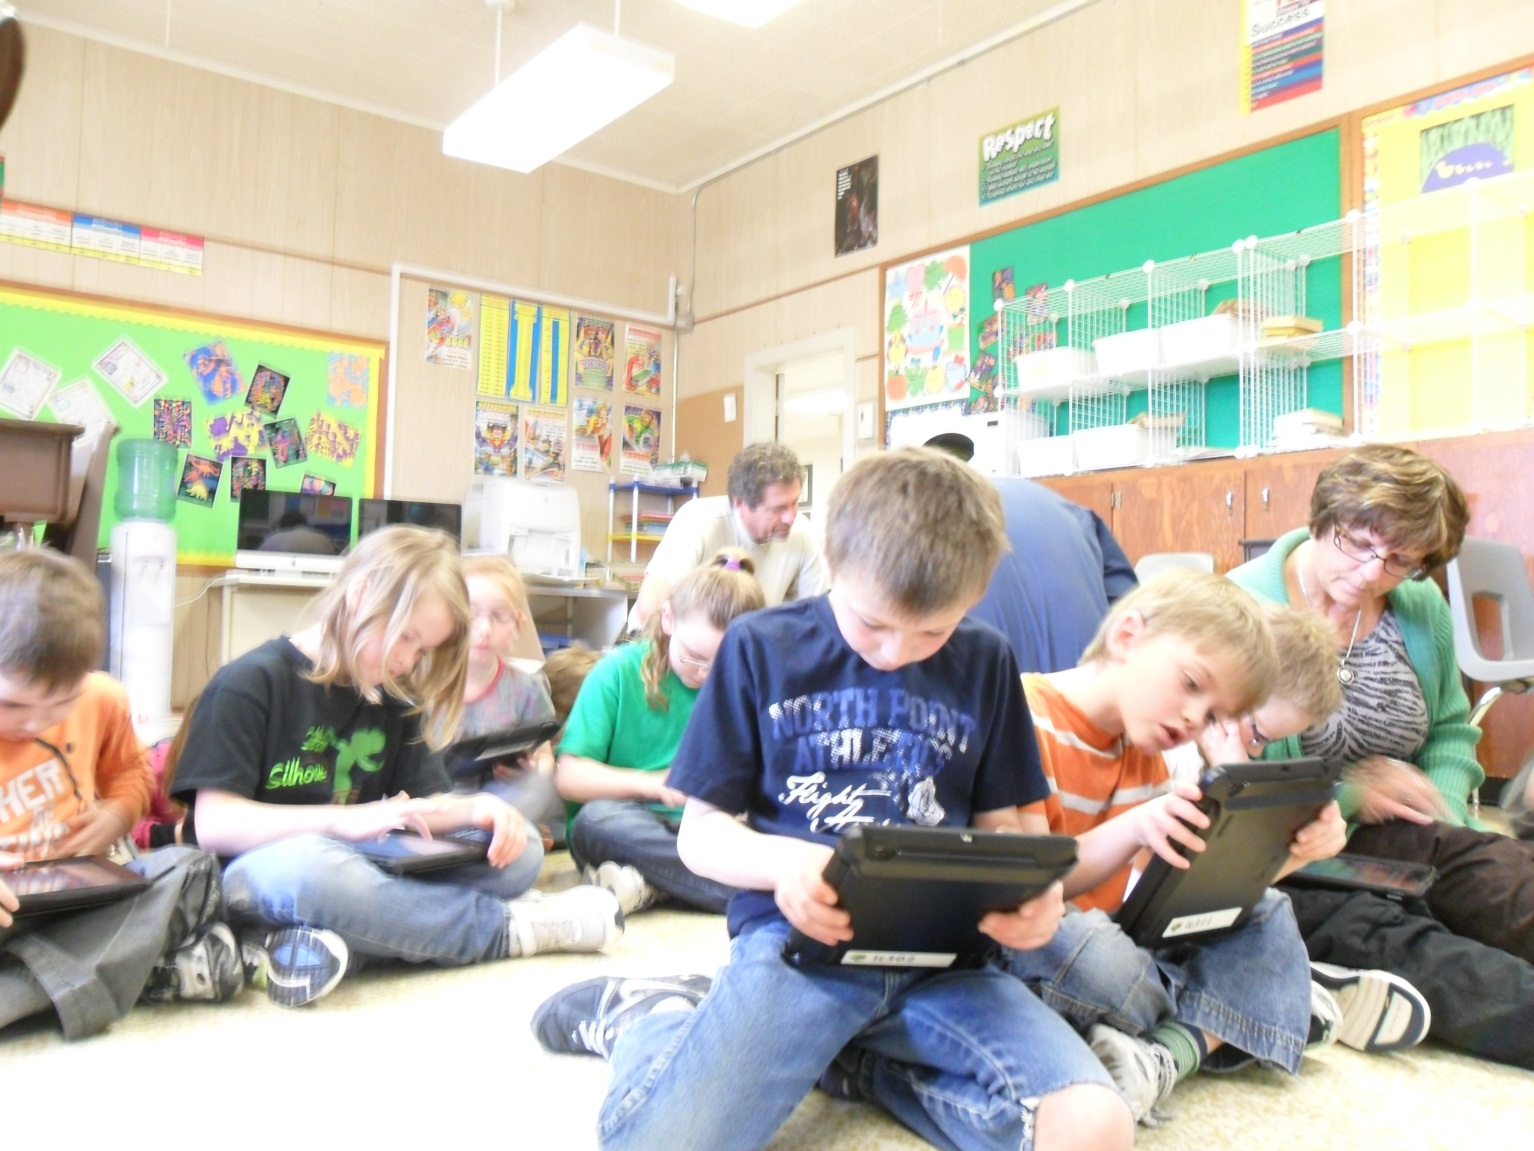 4 Creative Ways to Use iPads in the Classroom